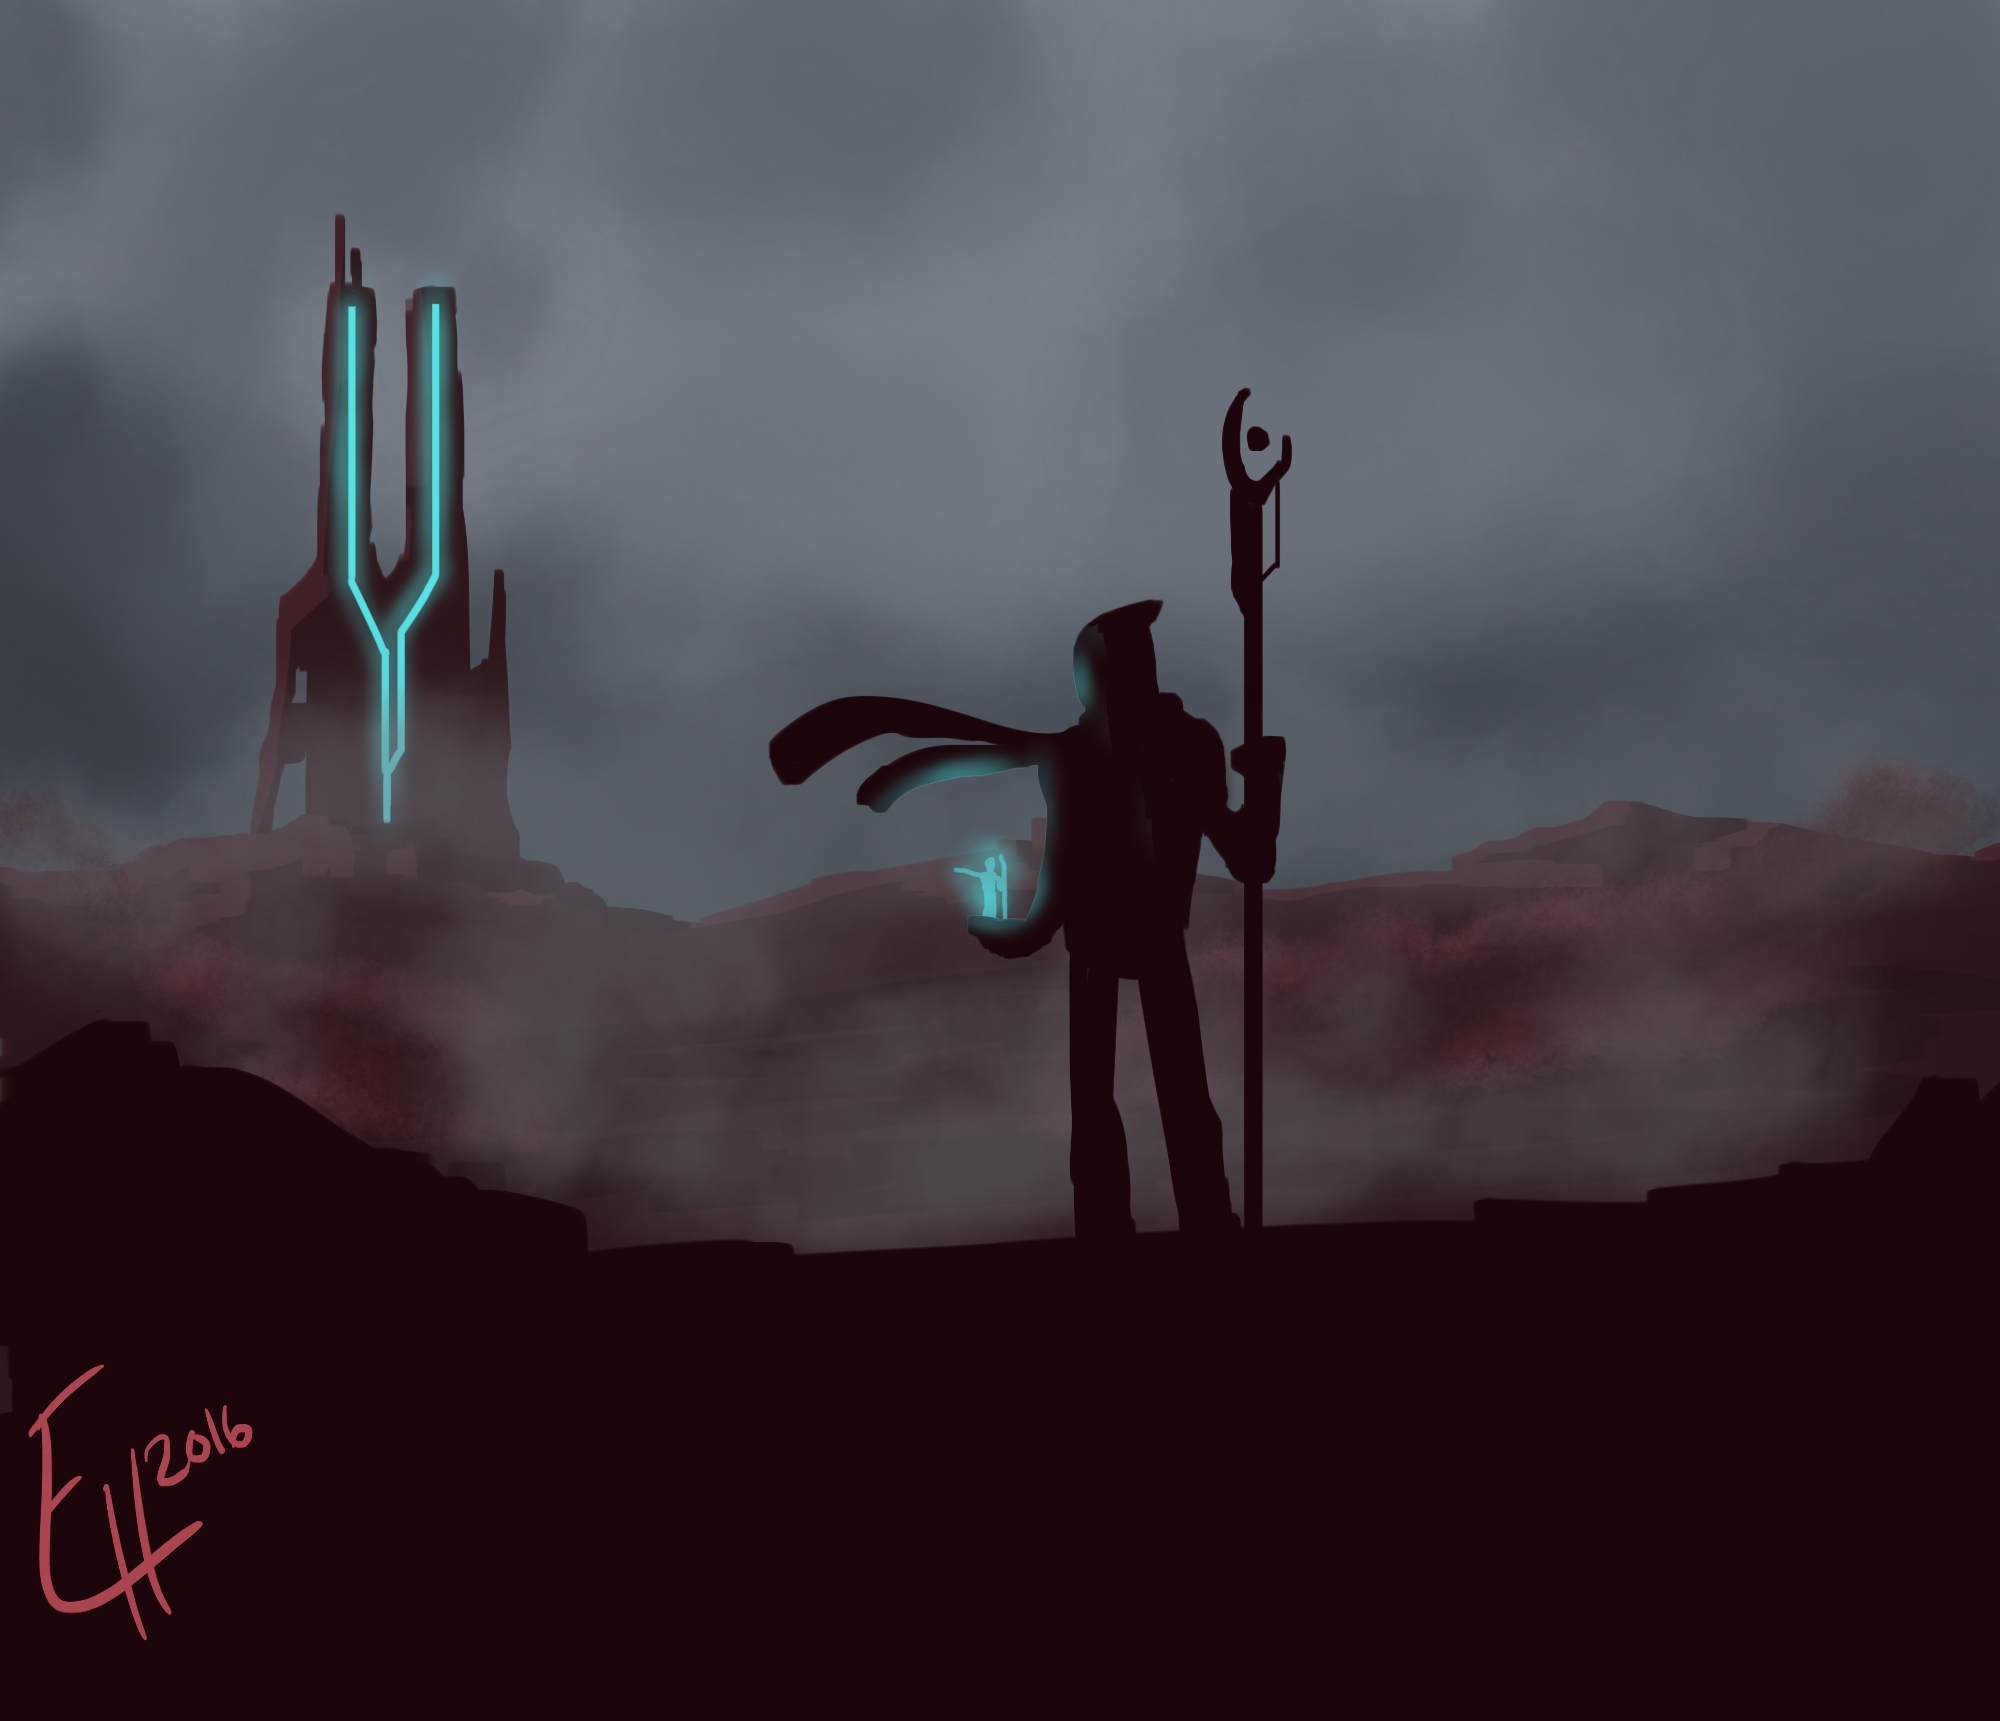 Digital Painting 024 - Starting over